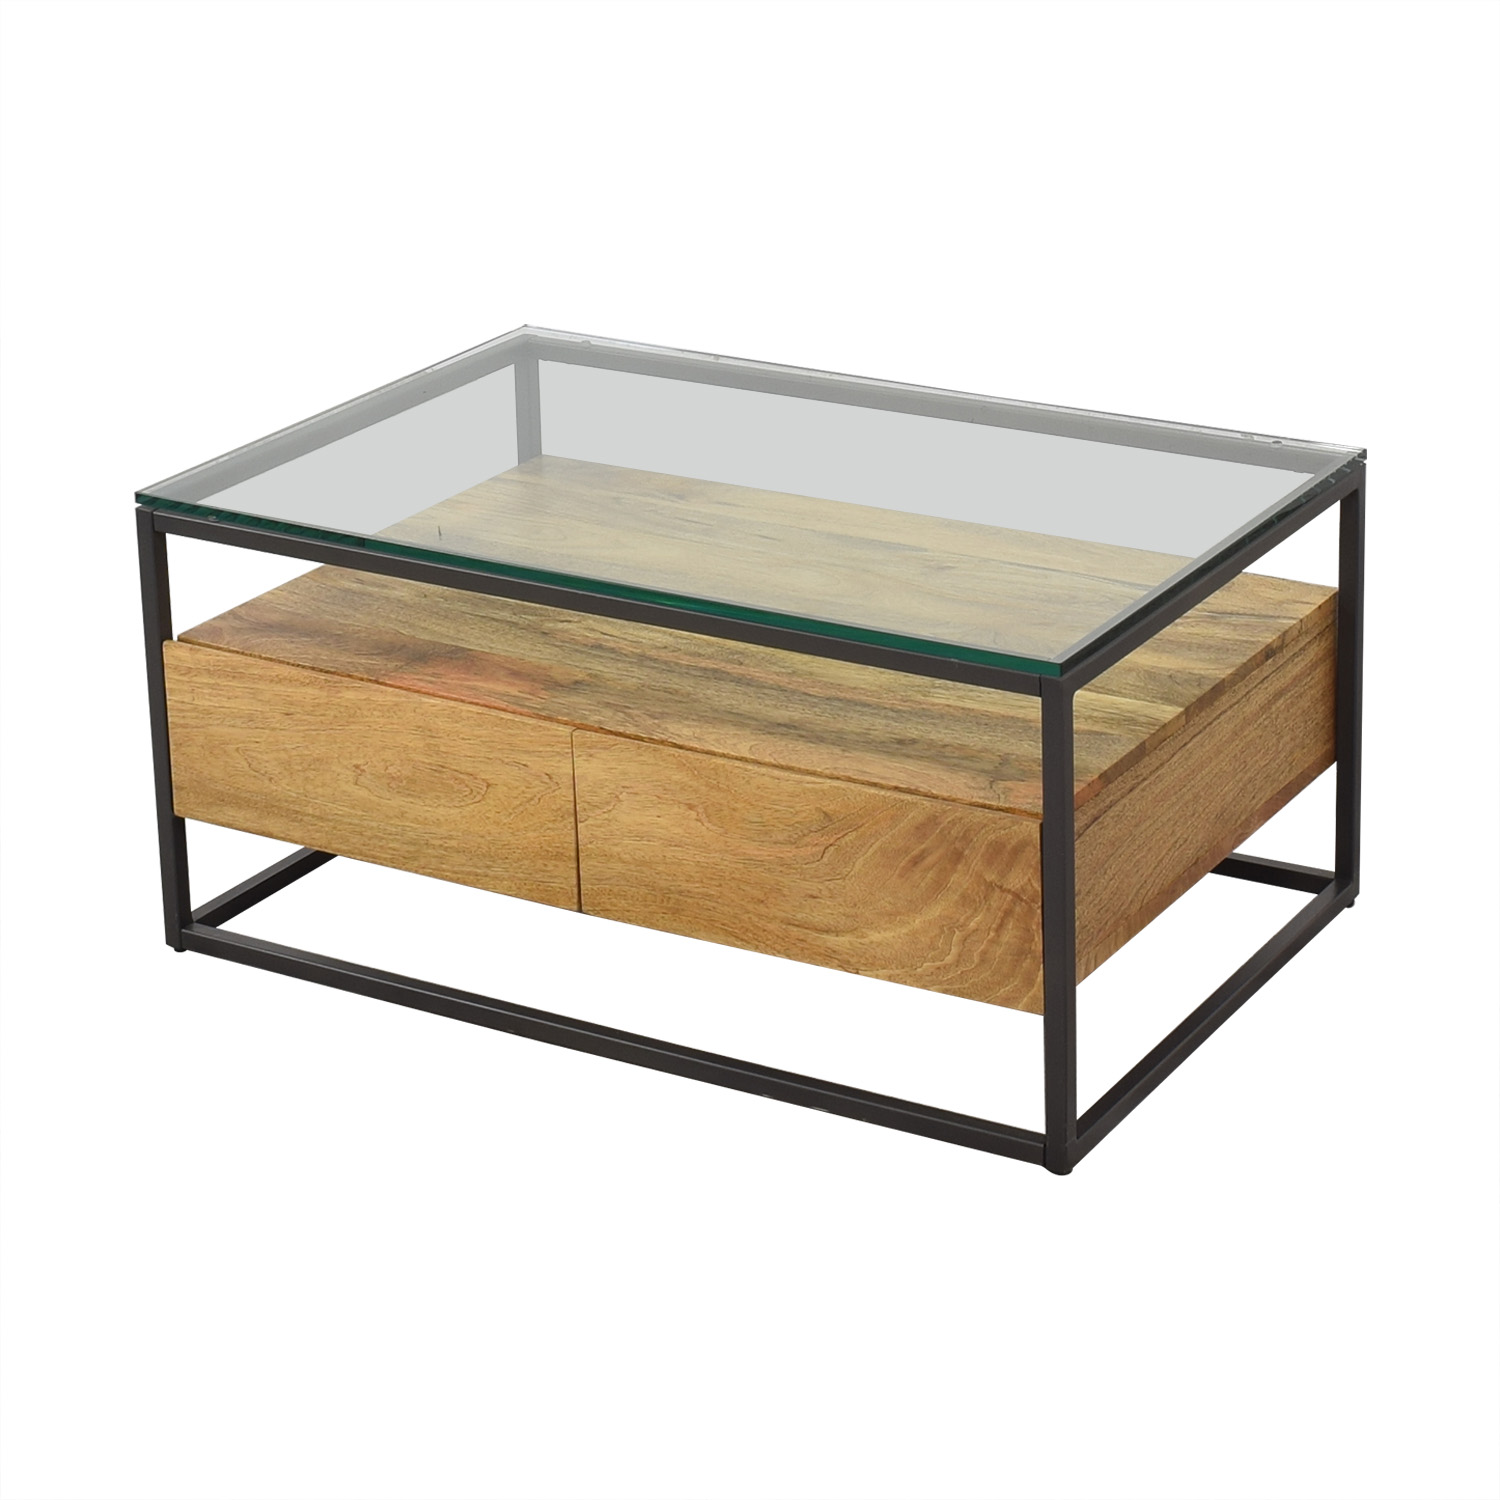 45 Off West Elm West Elm Box Frame Storage Coffee Table Tables